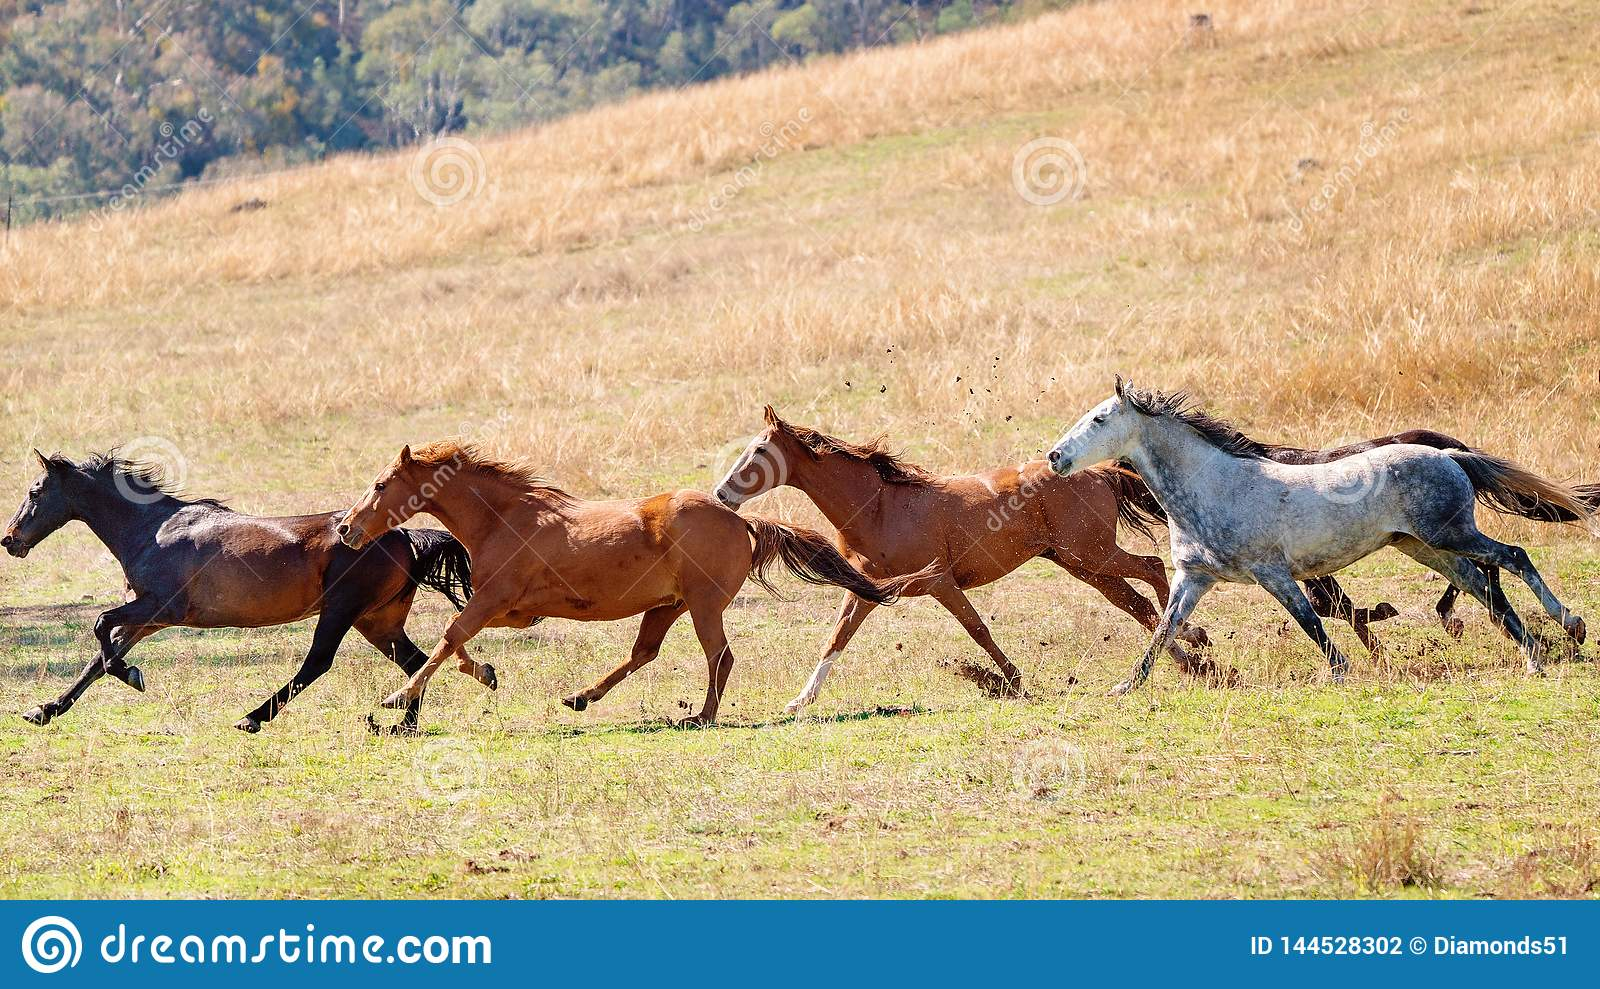 A Herd Of Wild Horses Racing Across Country Stock Photo Image Of Countryside Farm 144528302